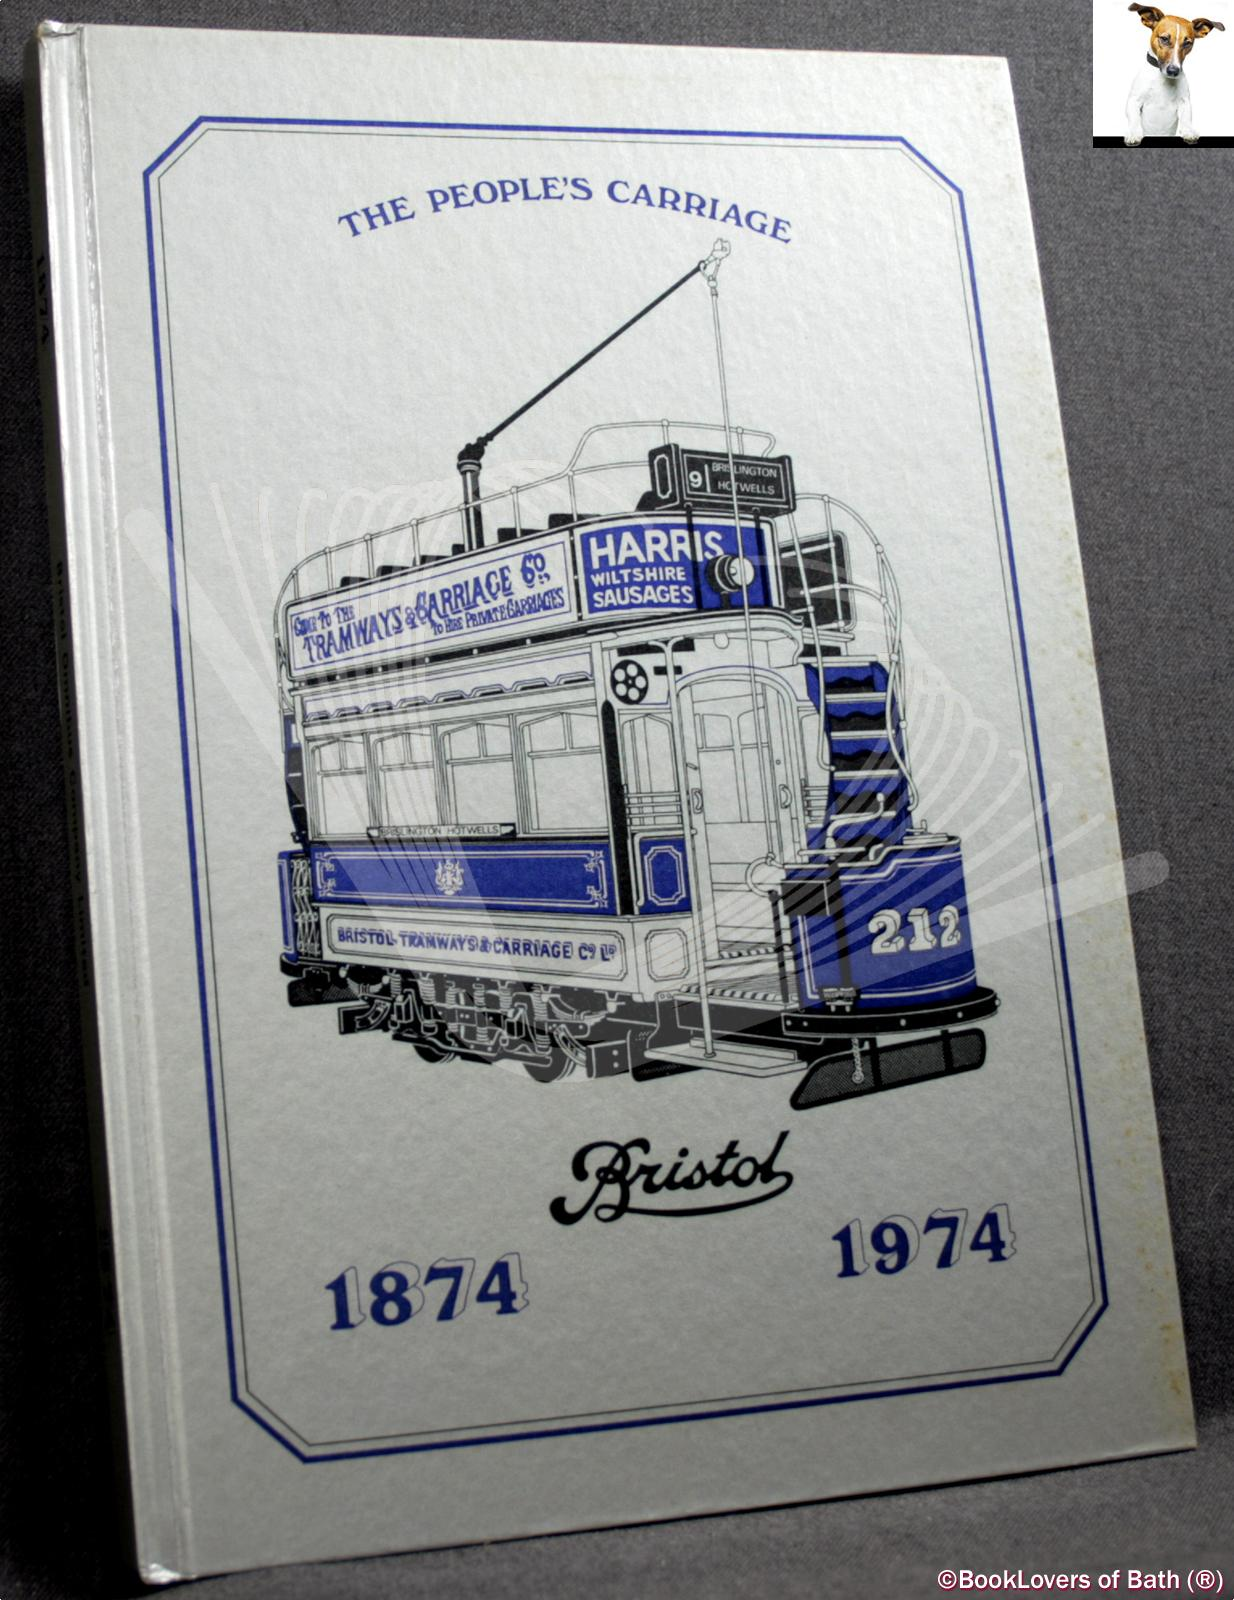 The People's Carriage 1874-1974: The History of Bristol Tramways Co. Ltd., Bristol Tramways & Carriage Co. Ltd., Bristol Omnibus Co. Ltd. - Anon.